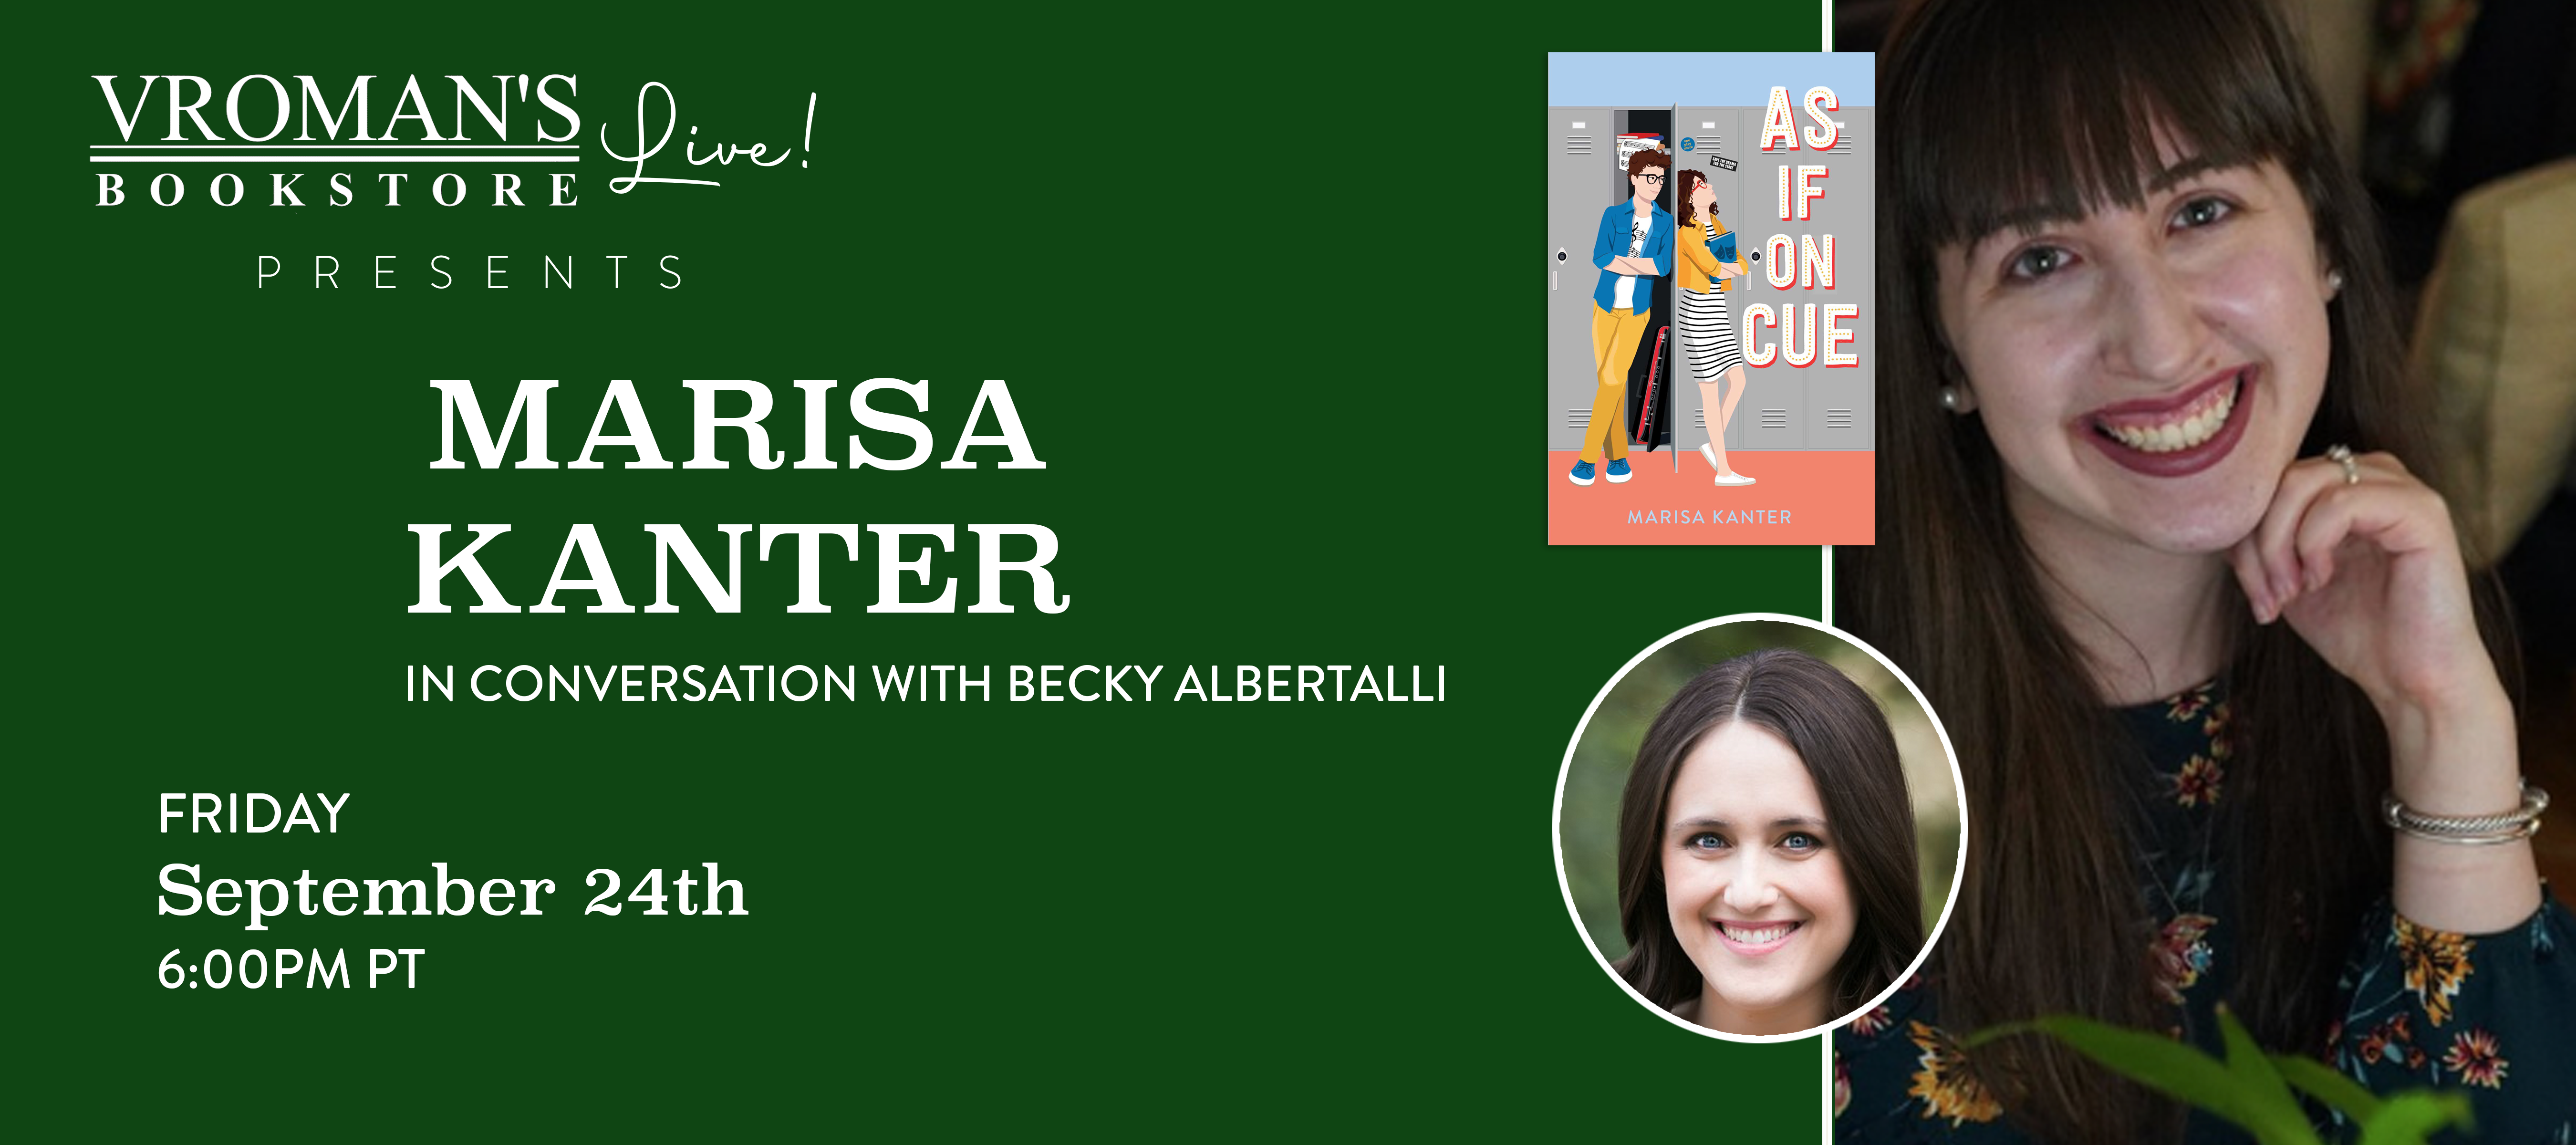 Green banner with details for event on Friday, September 24, 6pm  Marisa Kanter discusses As If on Cue